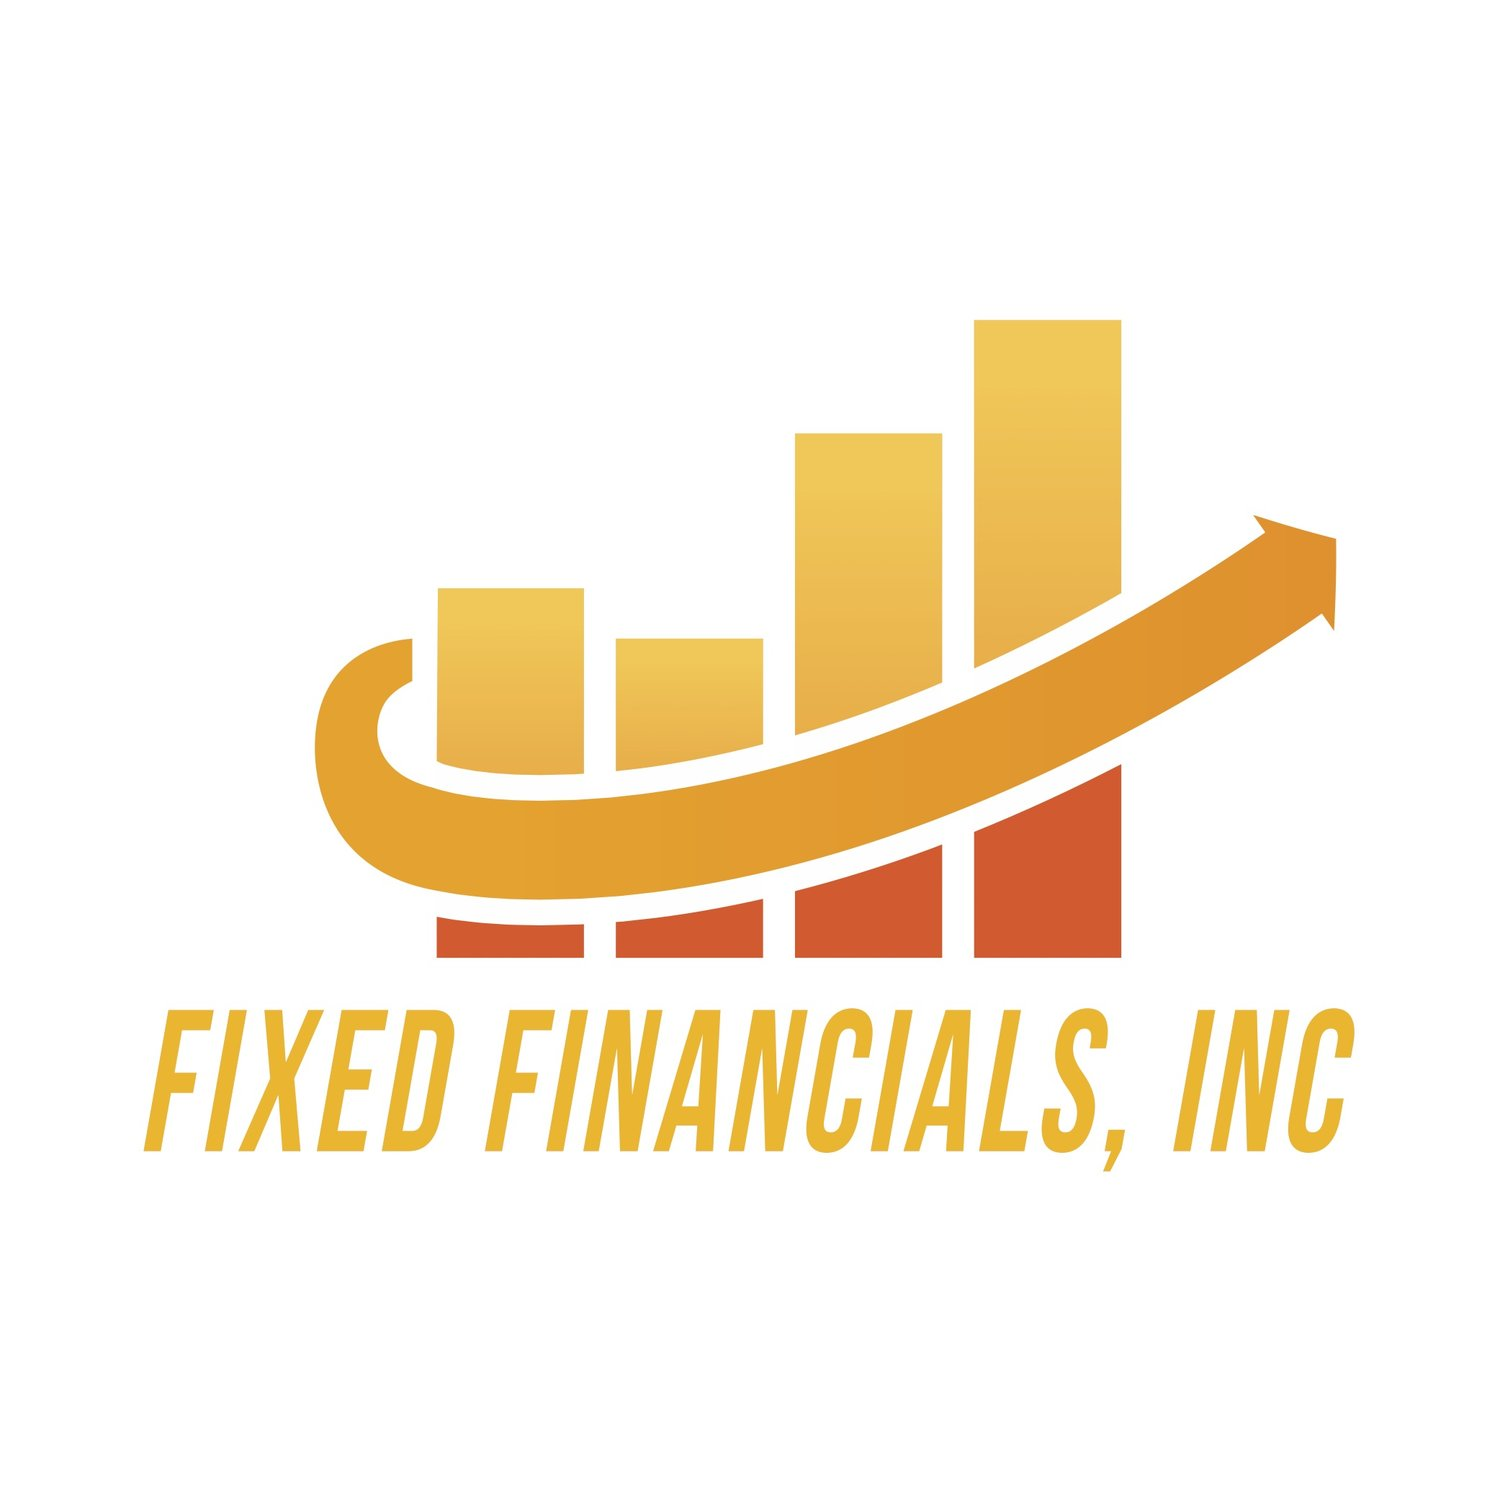 Fixed Financials, Inc